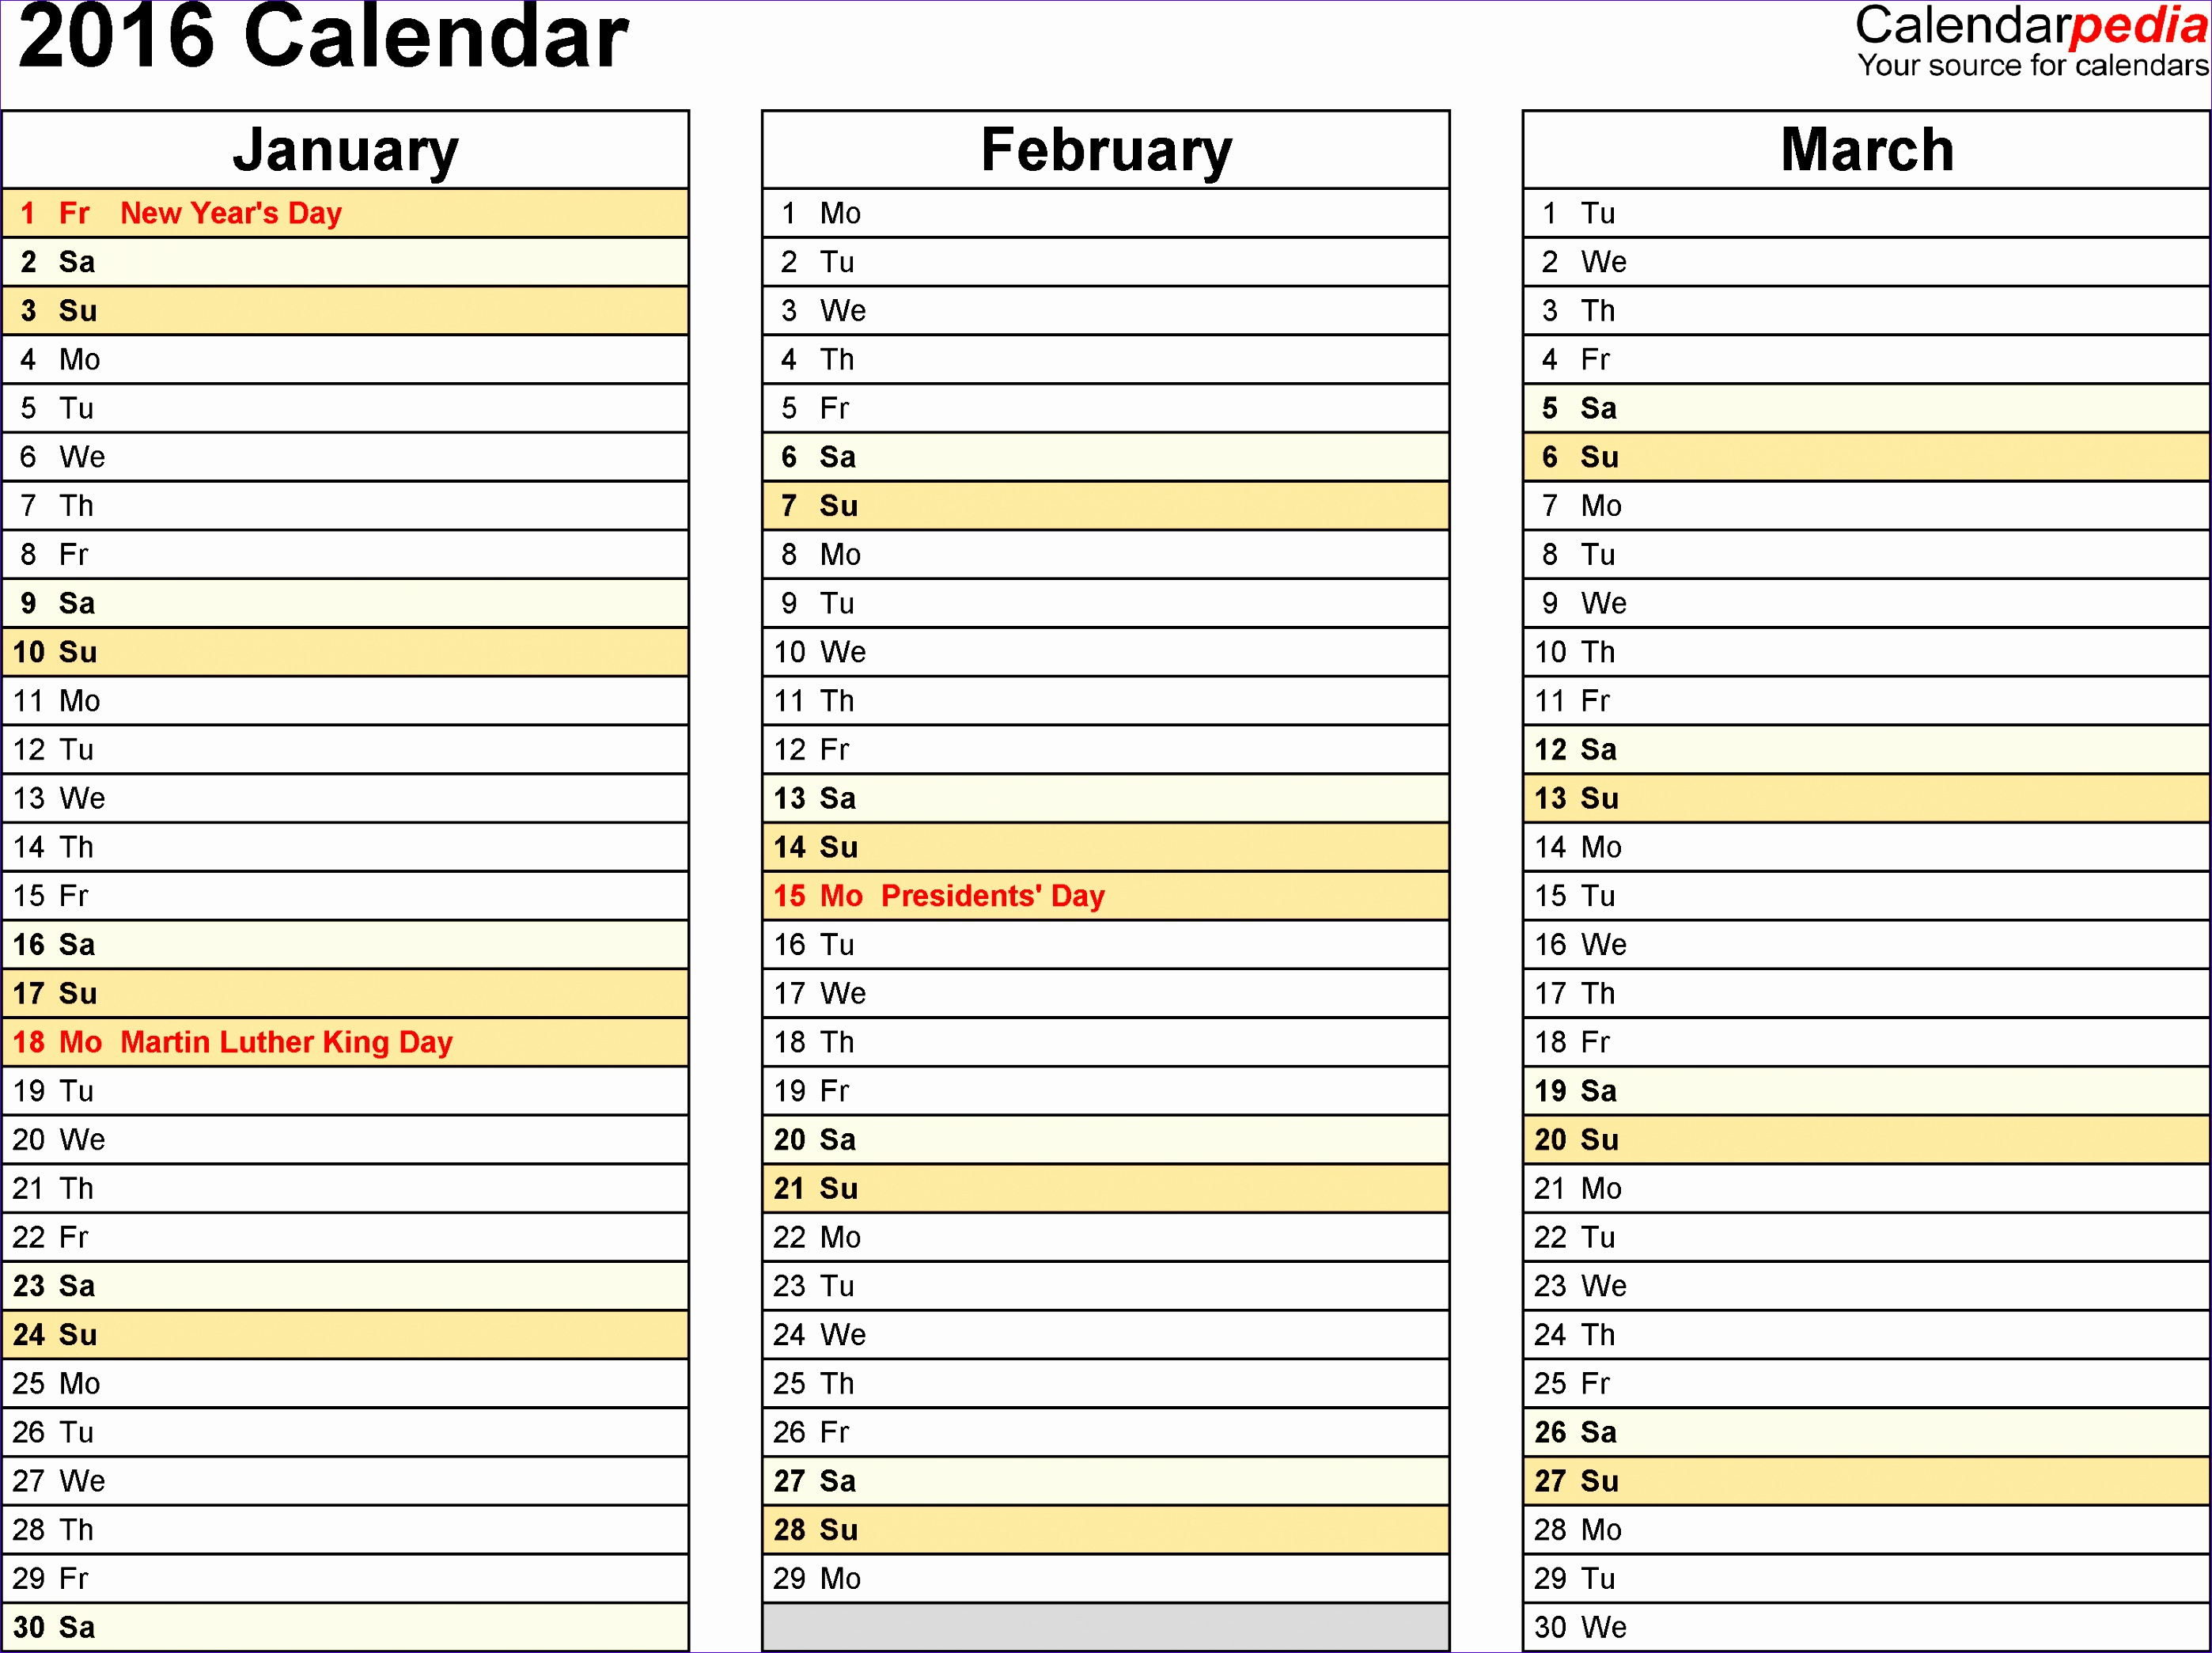 Free event Planning Checklist Template Excel X9alk Lovely 2016 Calendar Download 16 Free Printable Excel Templates Xls